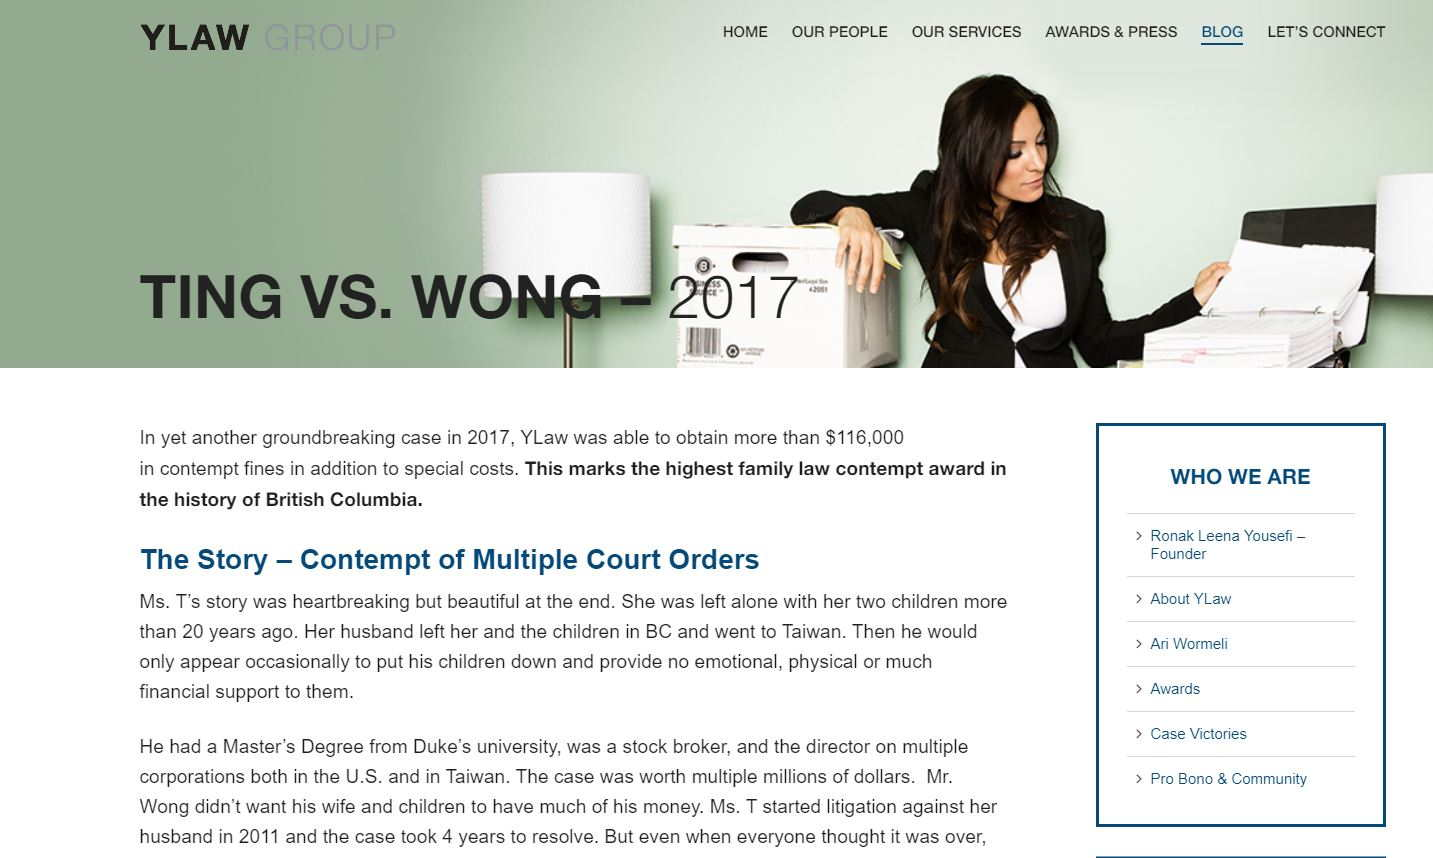 web design for lawyers_case results